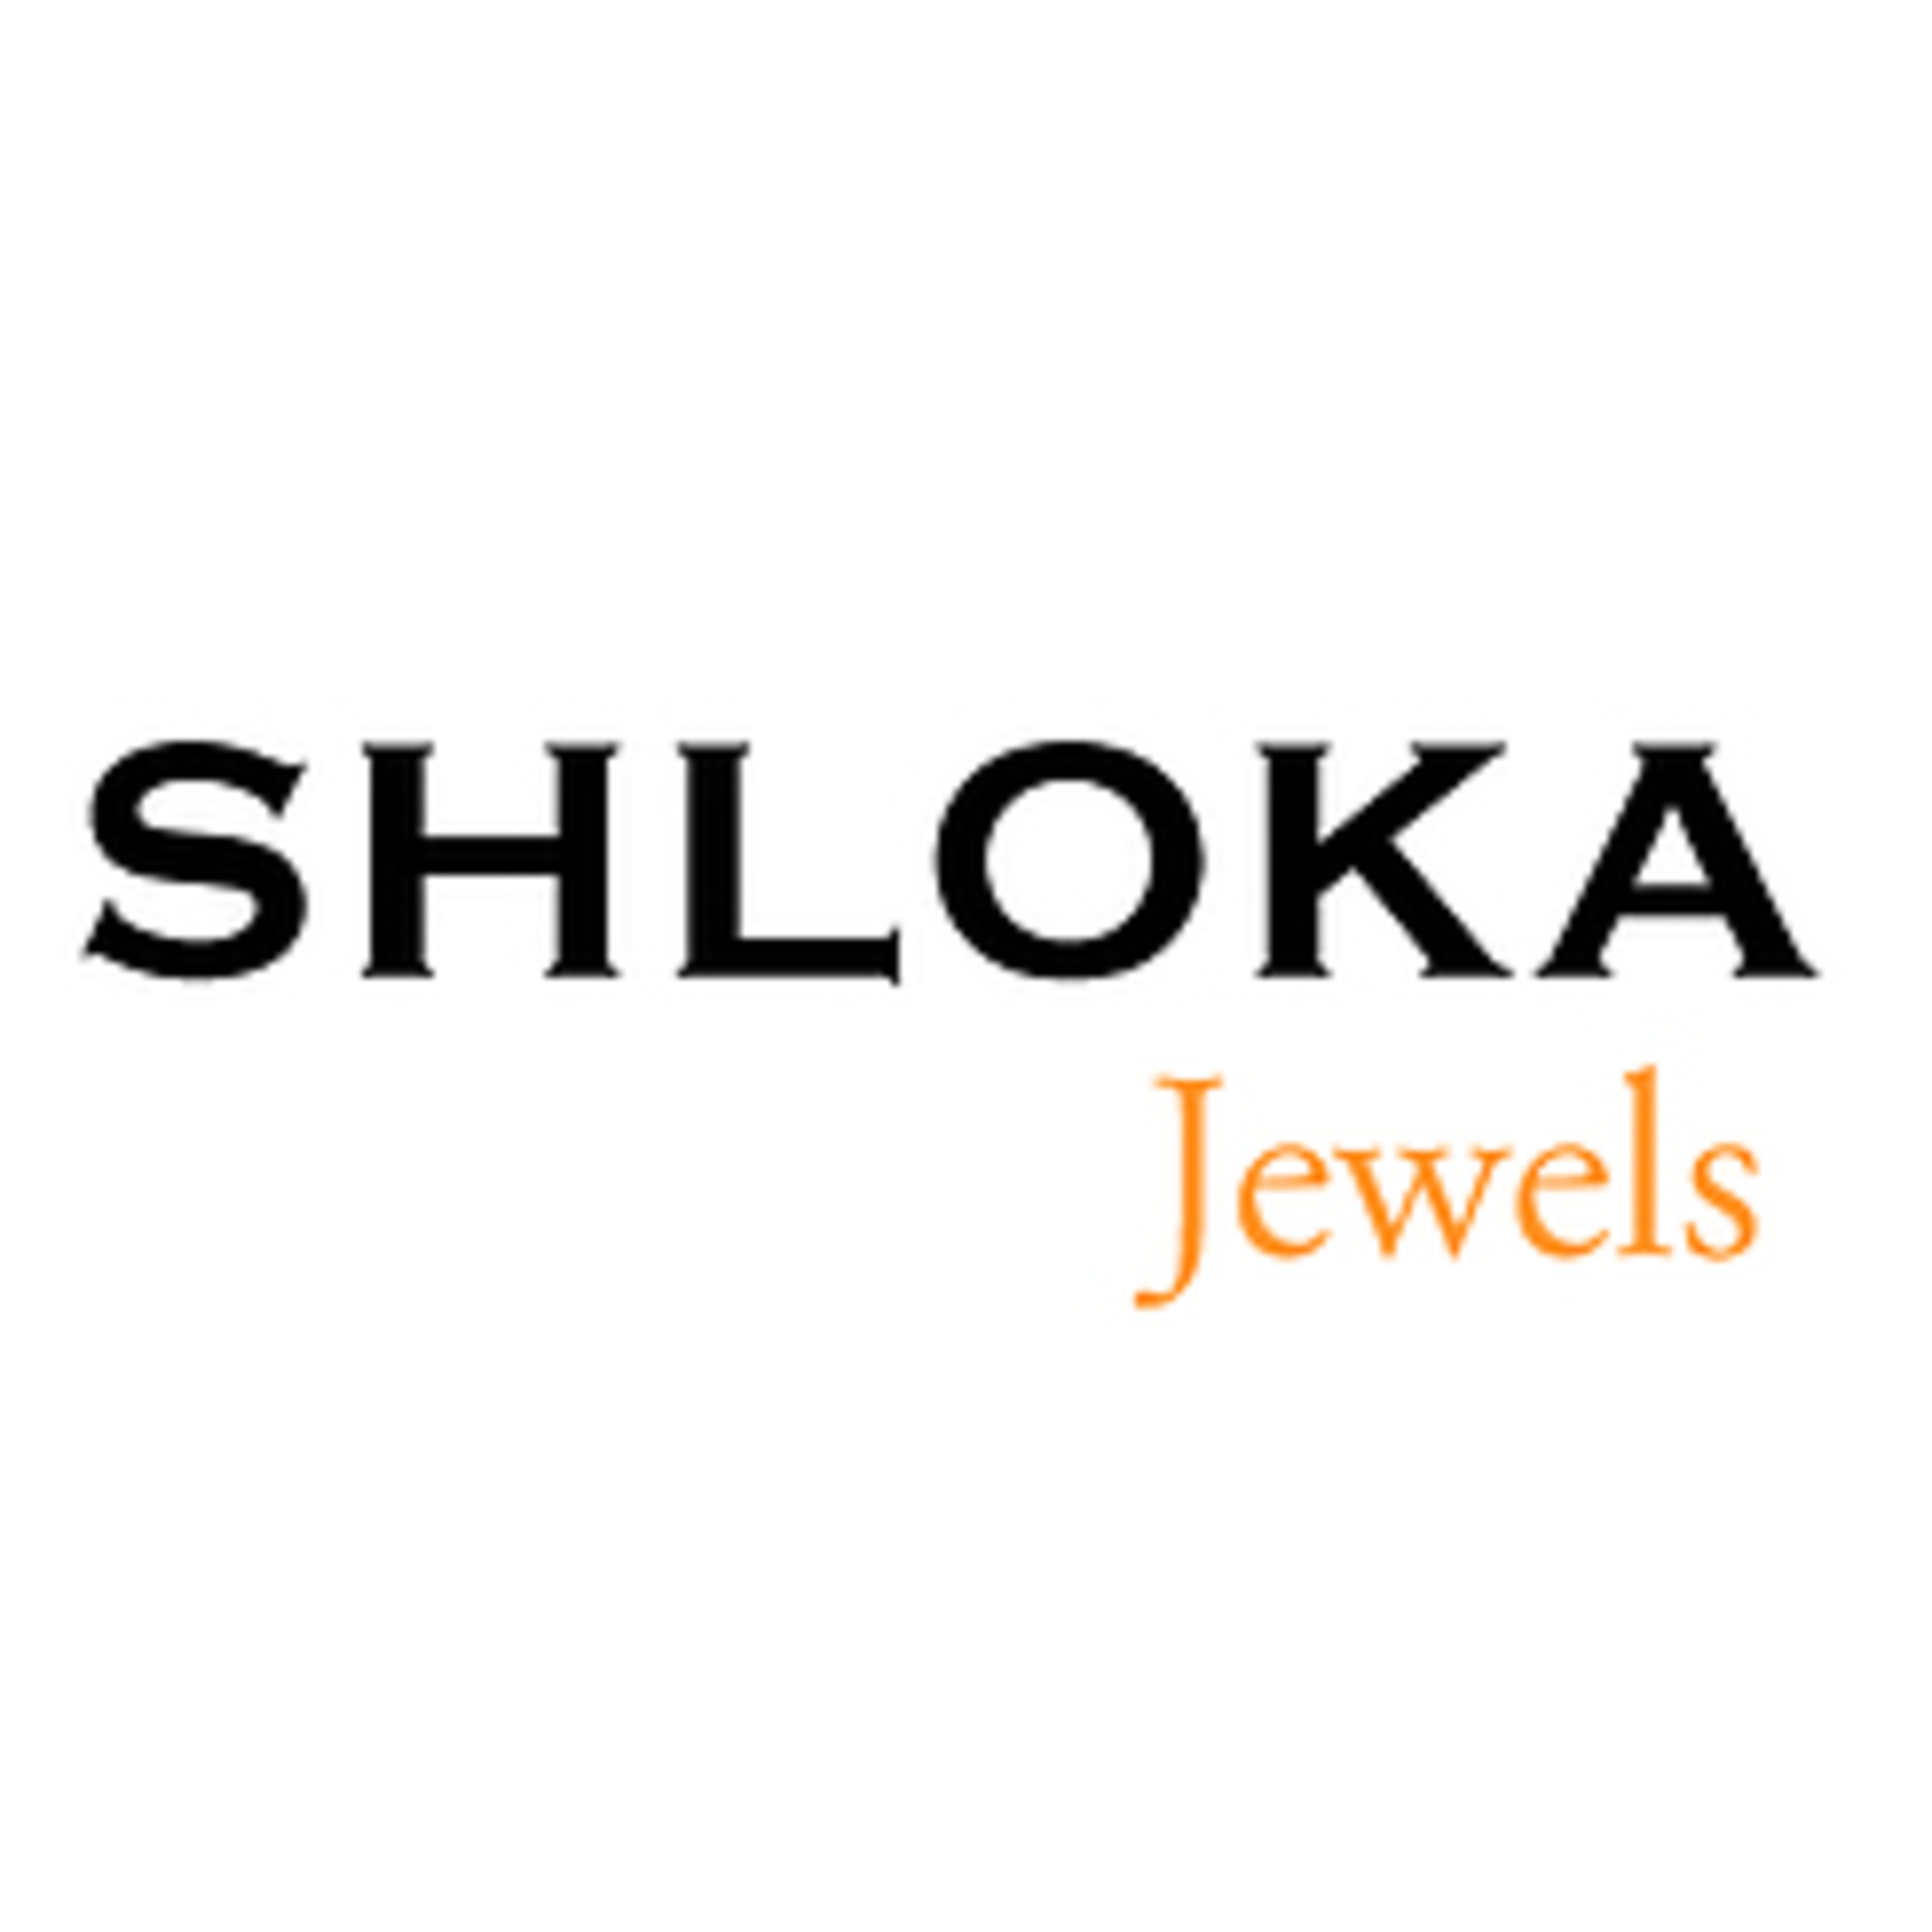 shloka jewels- company logo